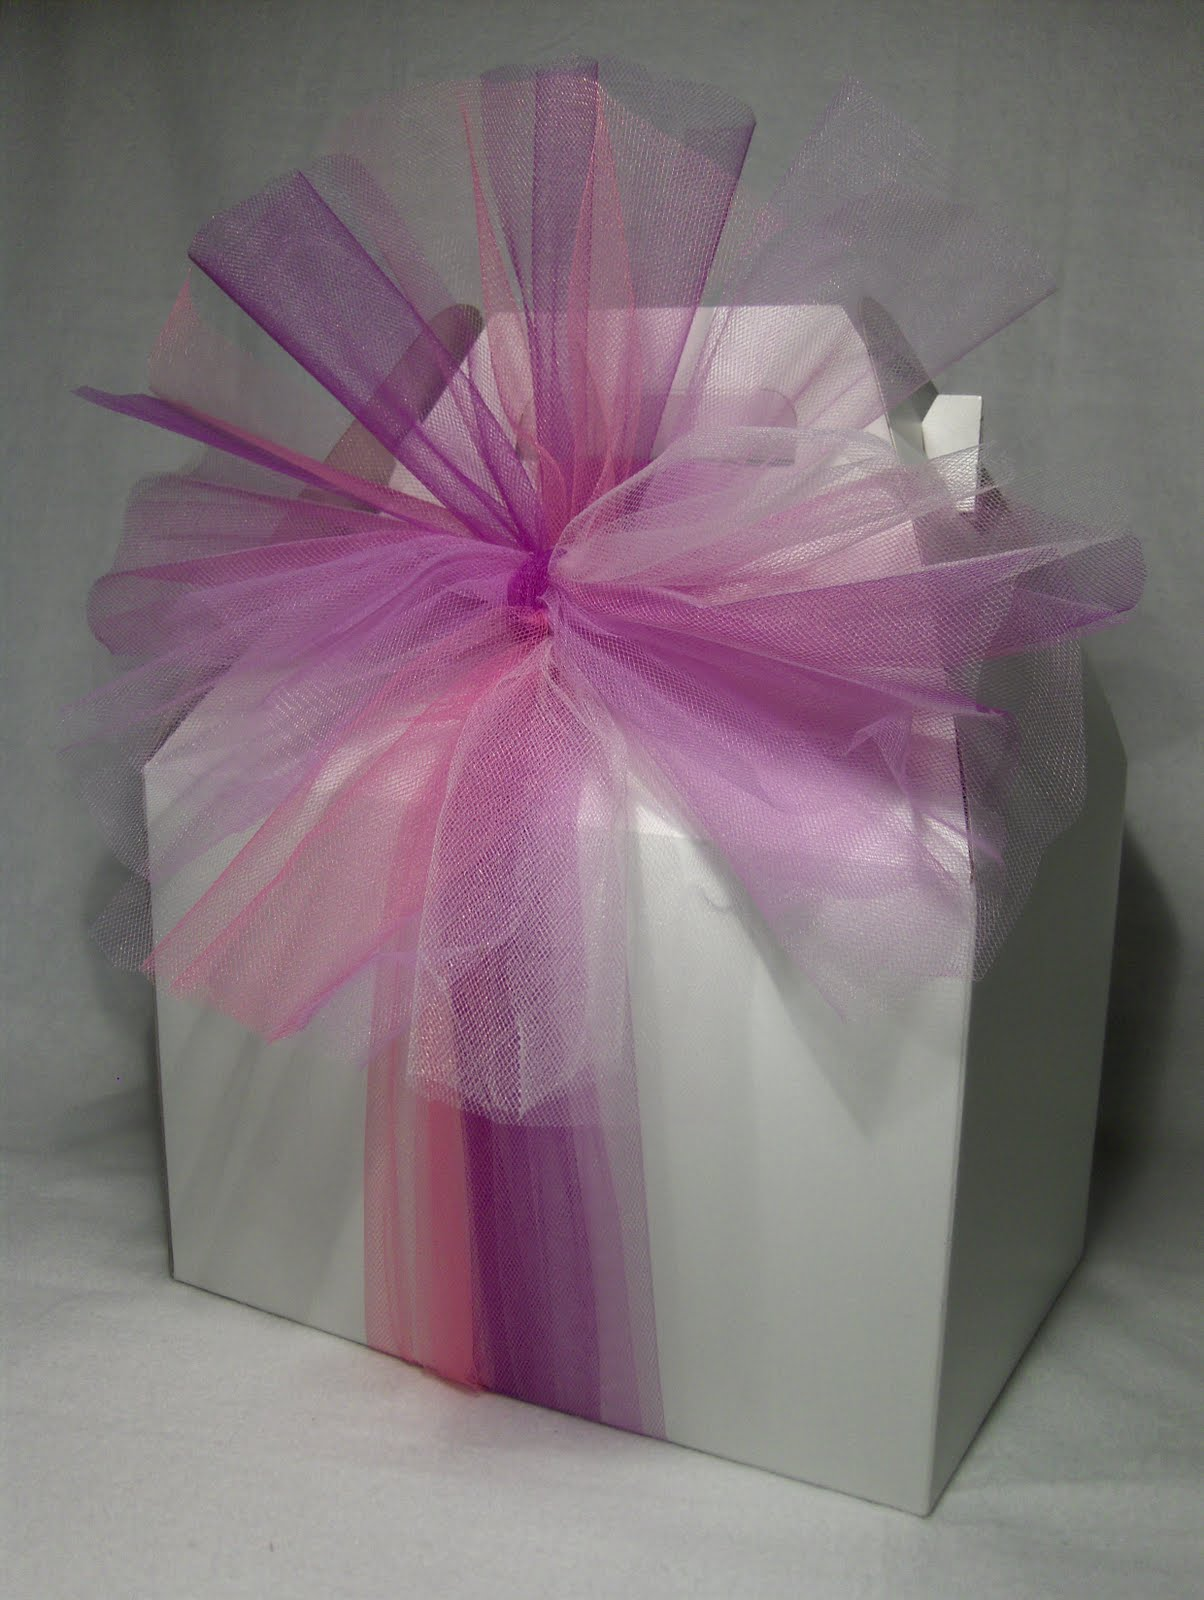 How To Wrap A Wedding Gift Box : white box wrapped with pink tulle netting